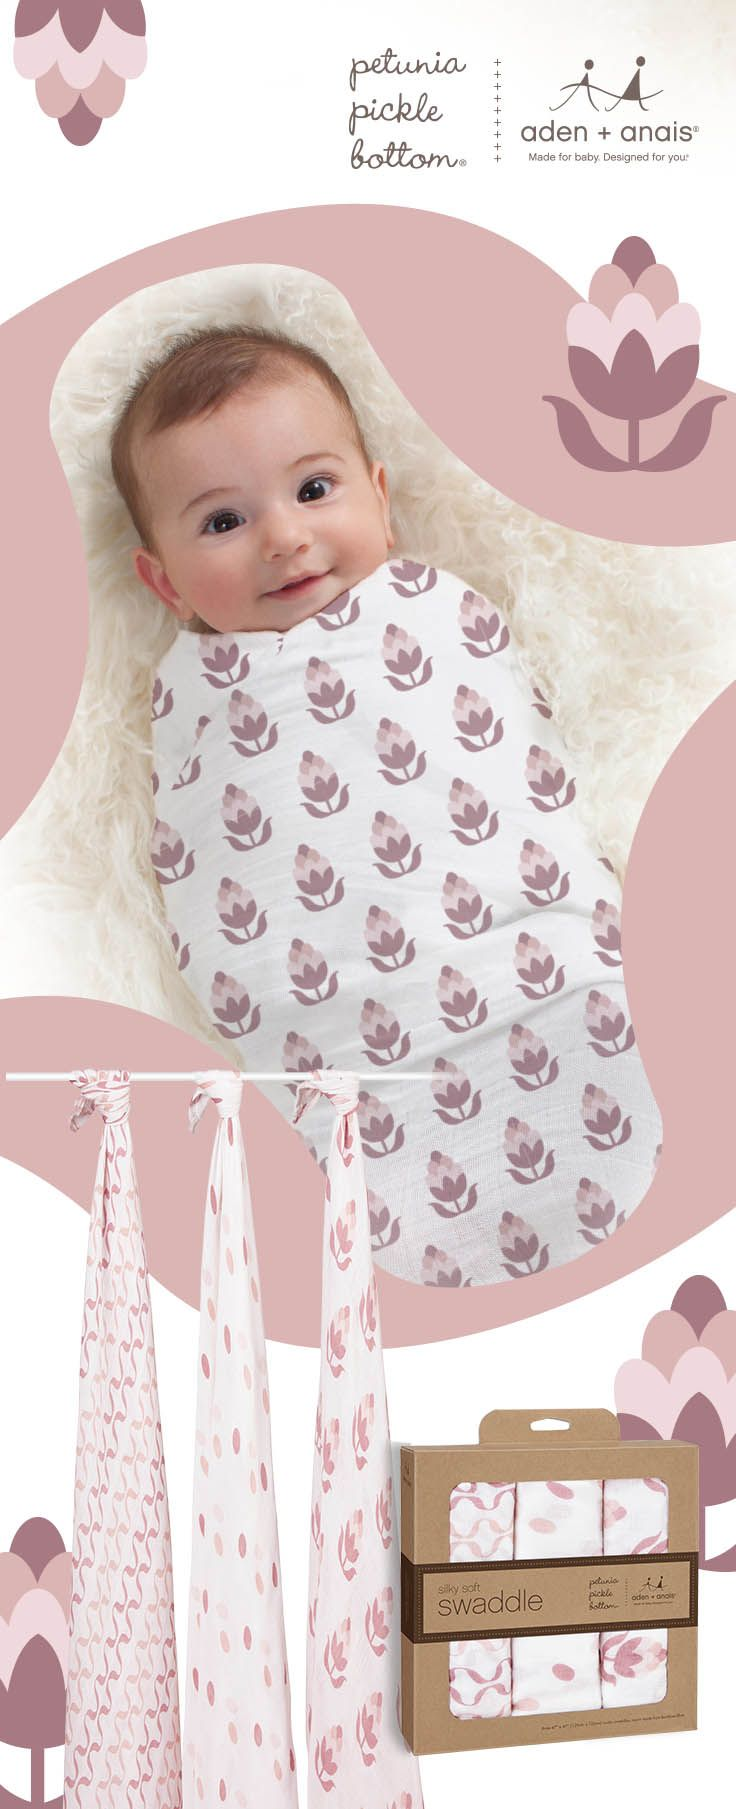 Made from luxuriously soft rayon made from bamboo, these breathable muslin swaddles can also be used as stroller covers, burp cloths, nursing covers and more. Plus, the beautiful @ppbbaby prints ensure your little one is not only comfy, but oh-so adorable too.